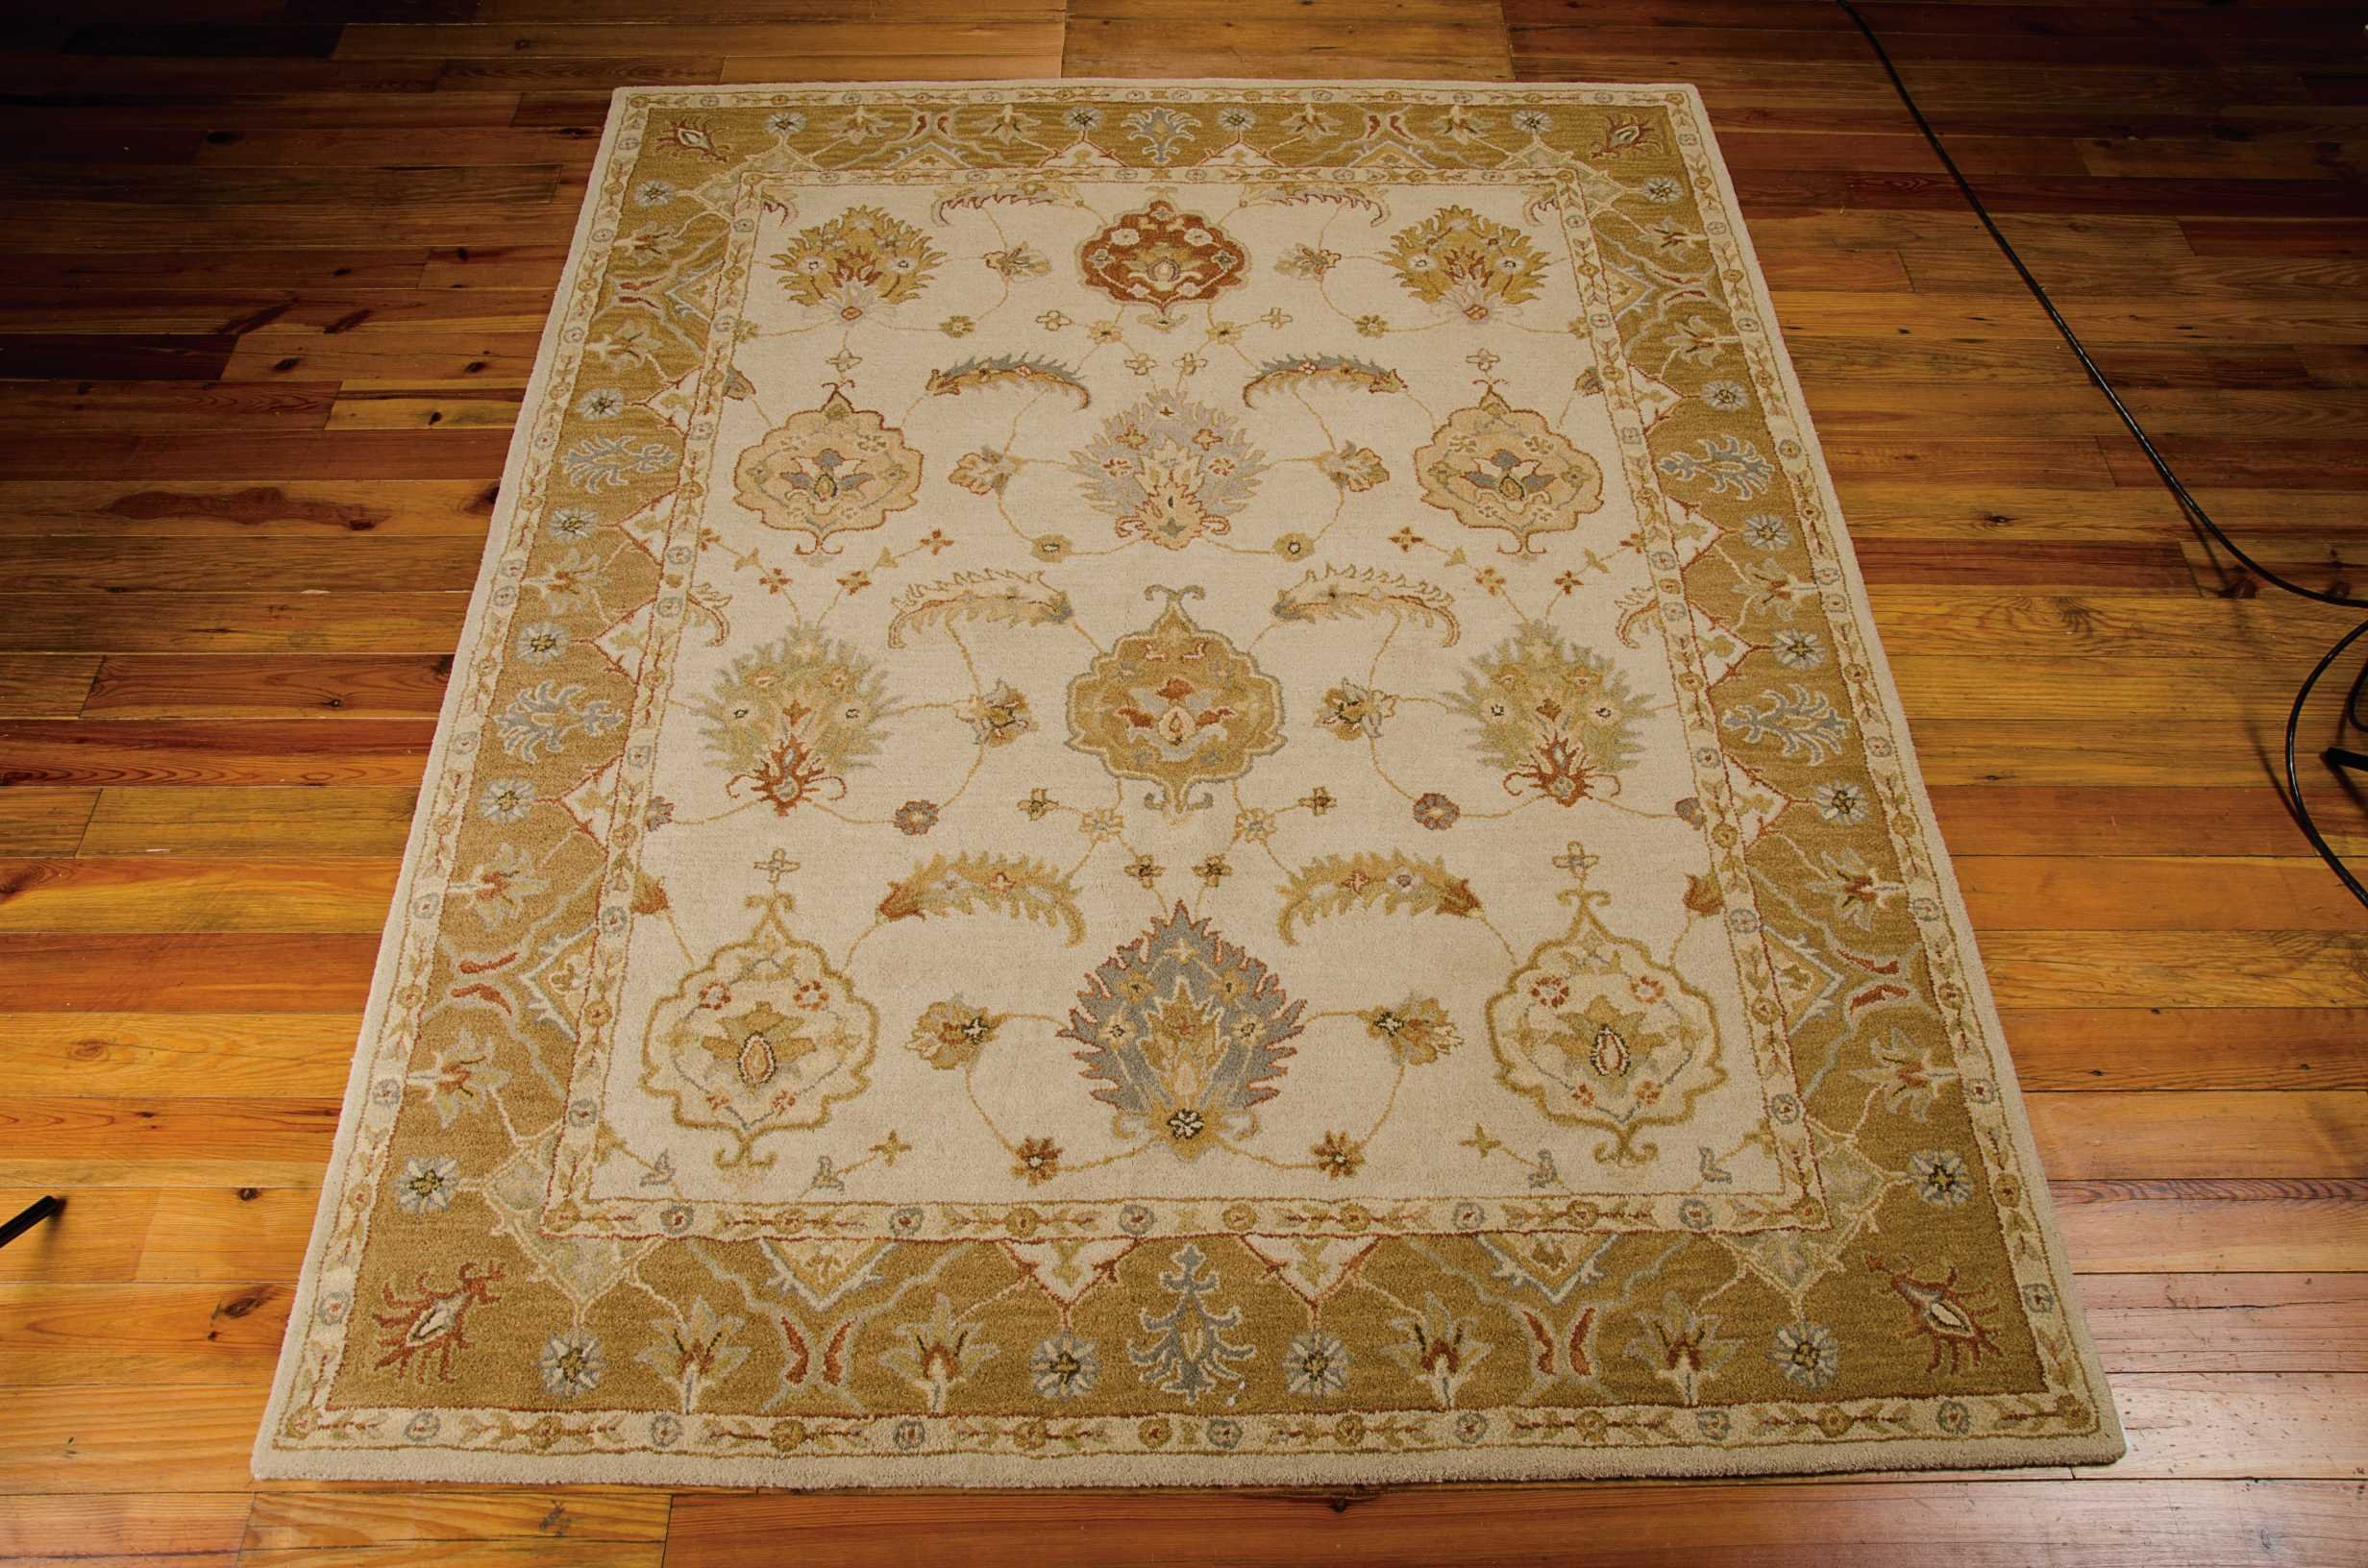 Nourison India House (IH87) Ivory/Gold Rectangle Area Rug, 8-Feet by 10-Feet 6-Inches (8' x 10'6'')